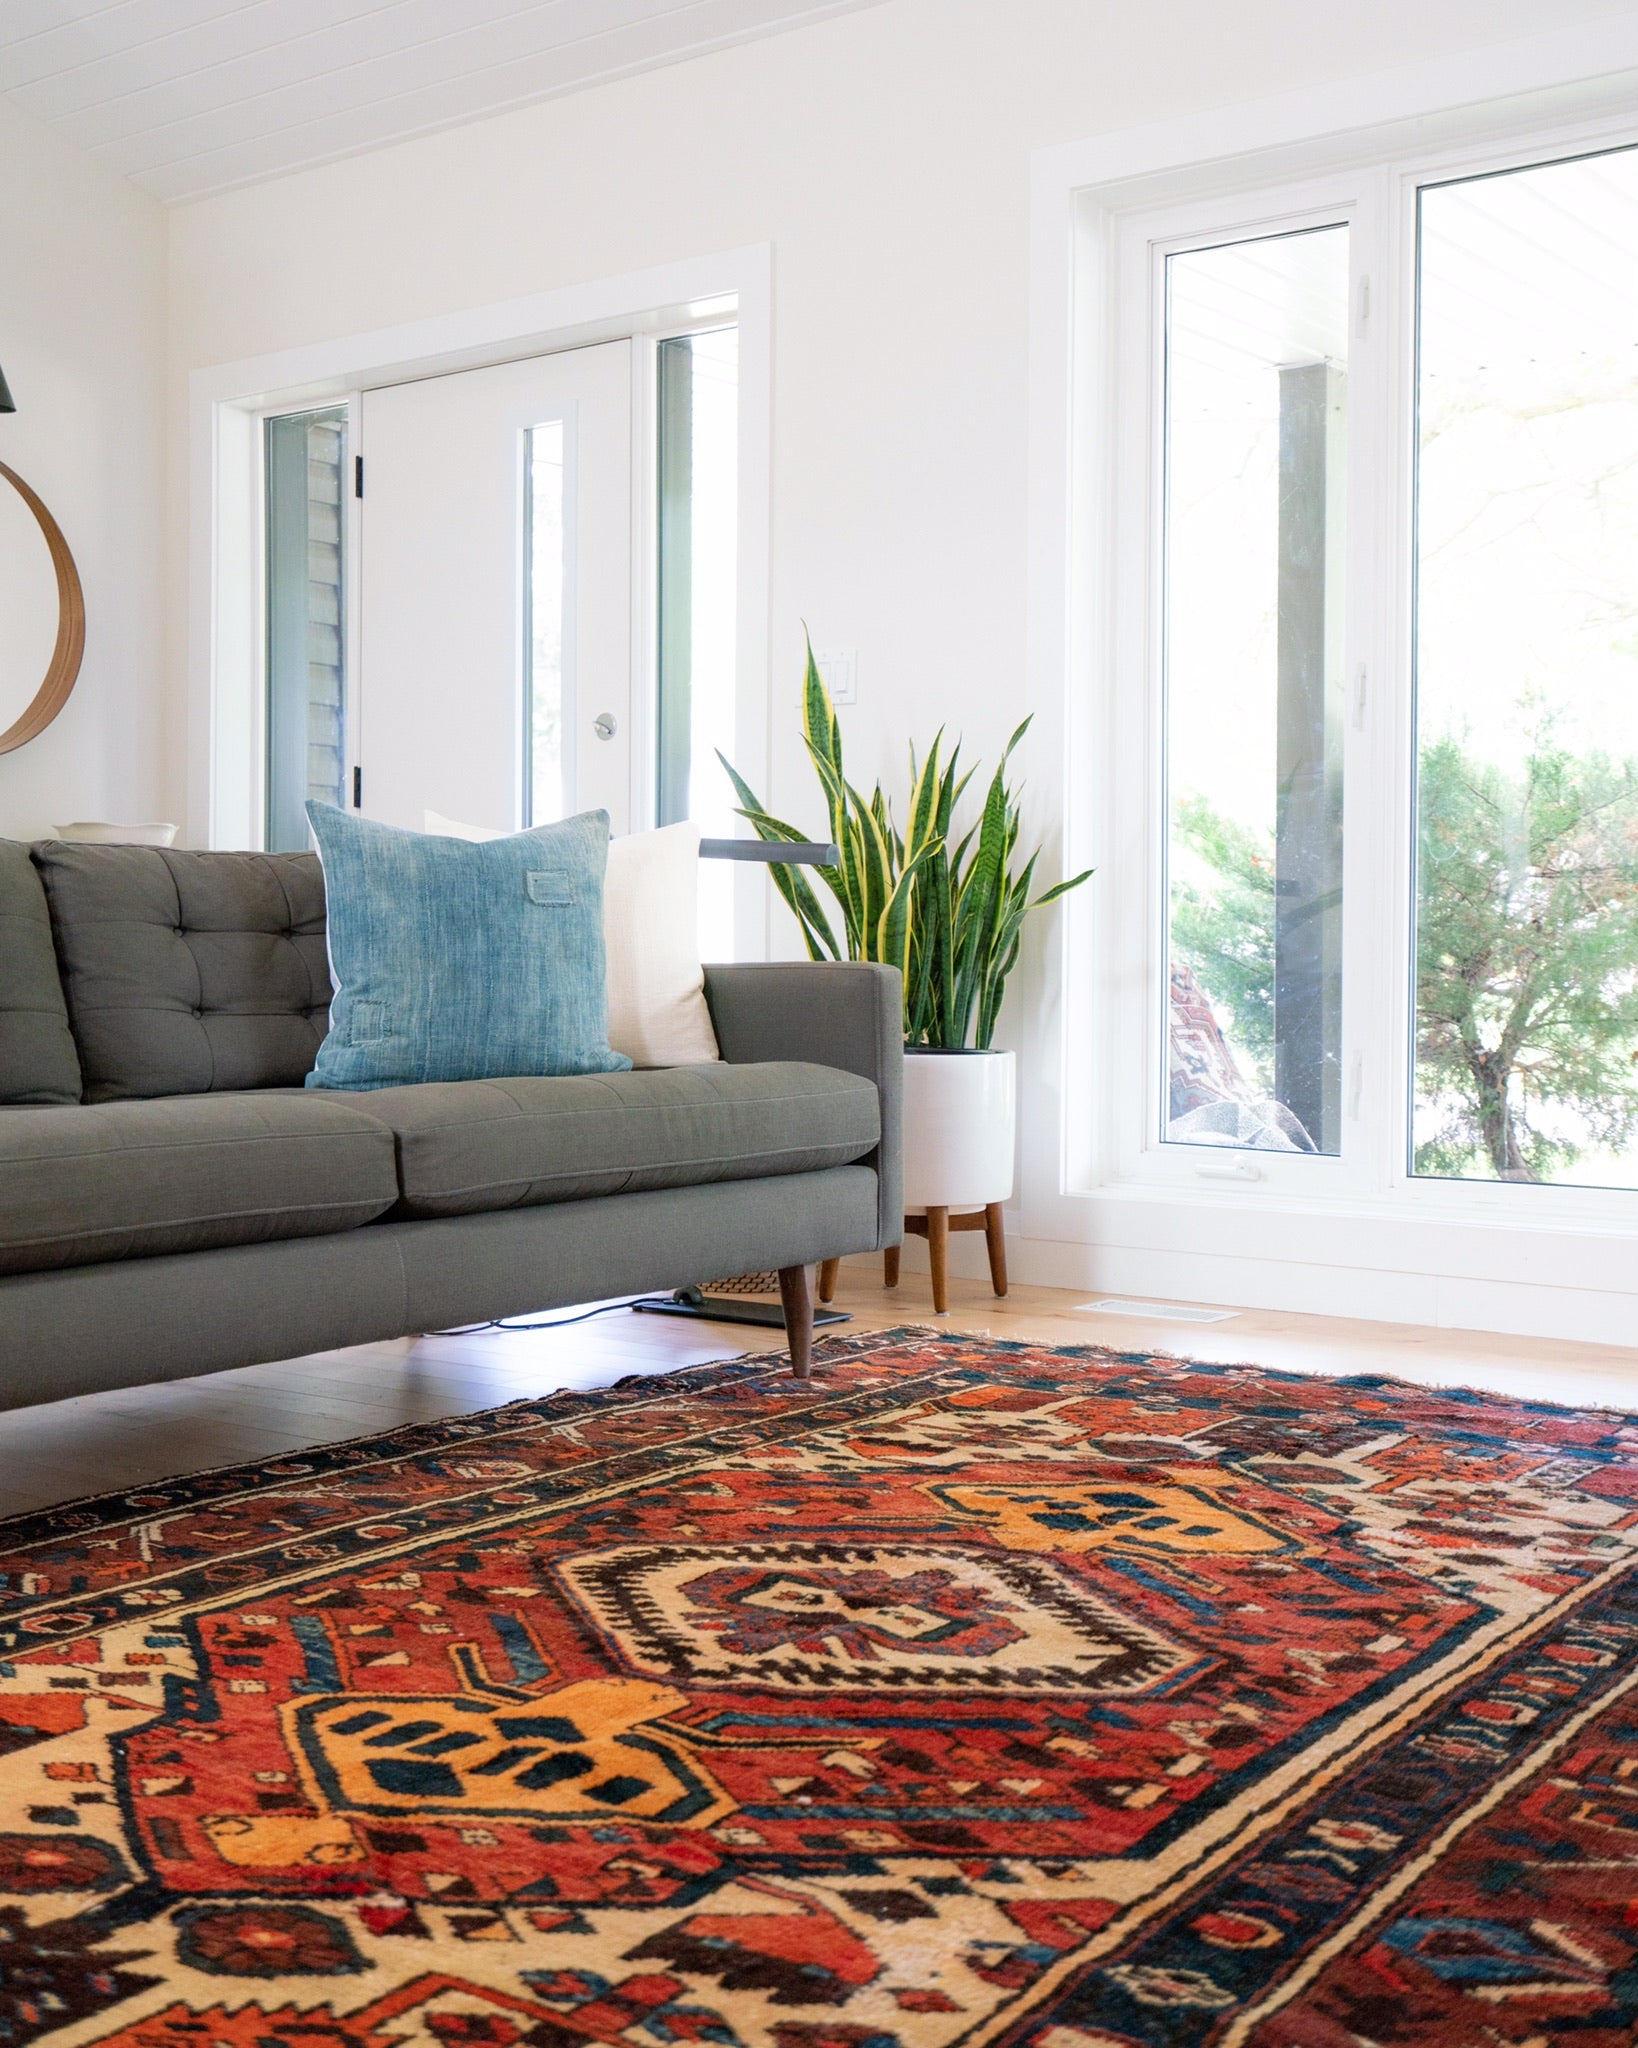 Genuine Handmade Indian Rugs | Improving Lives in India